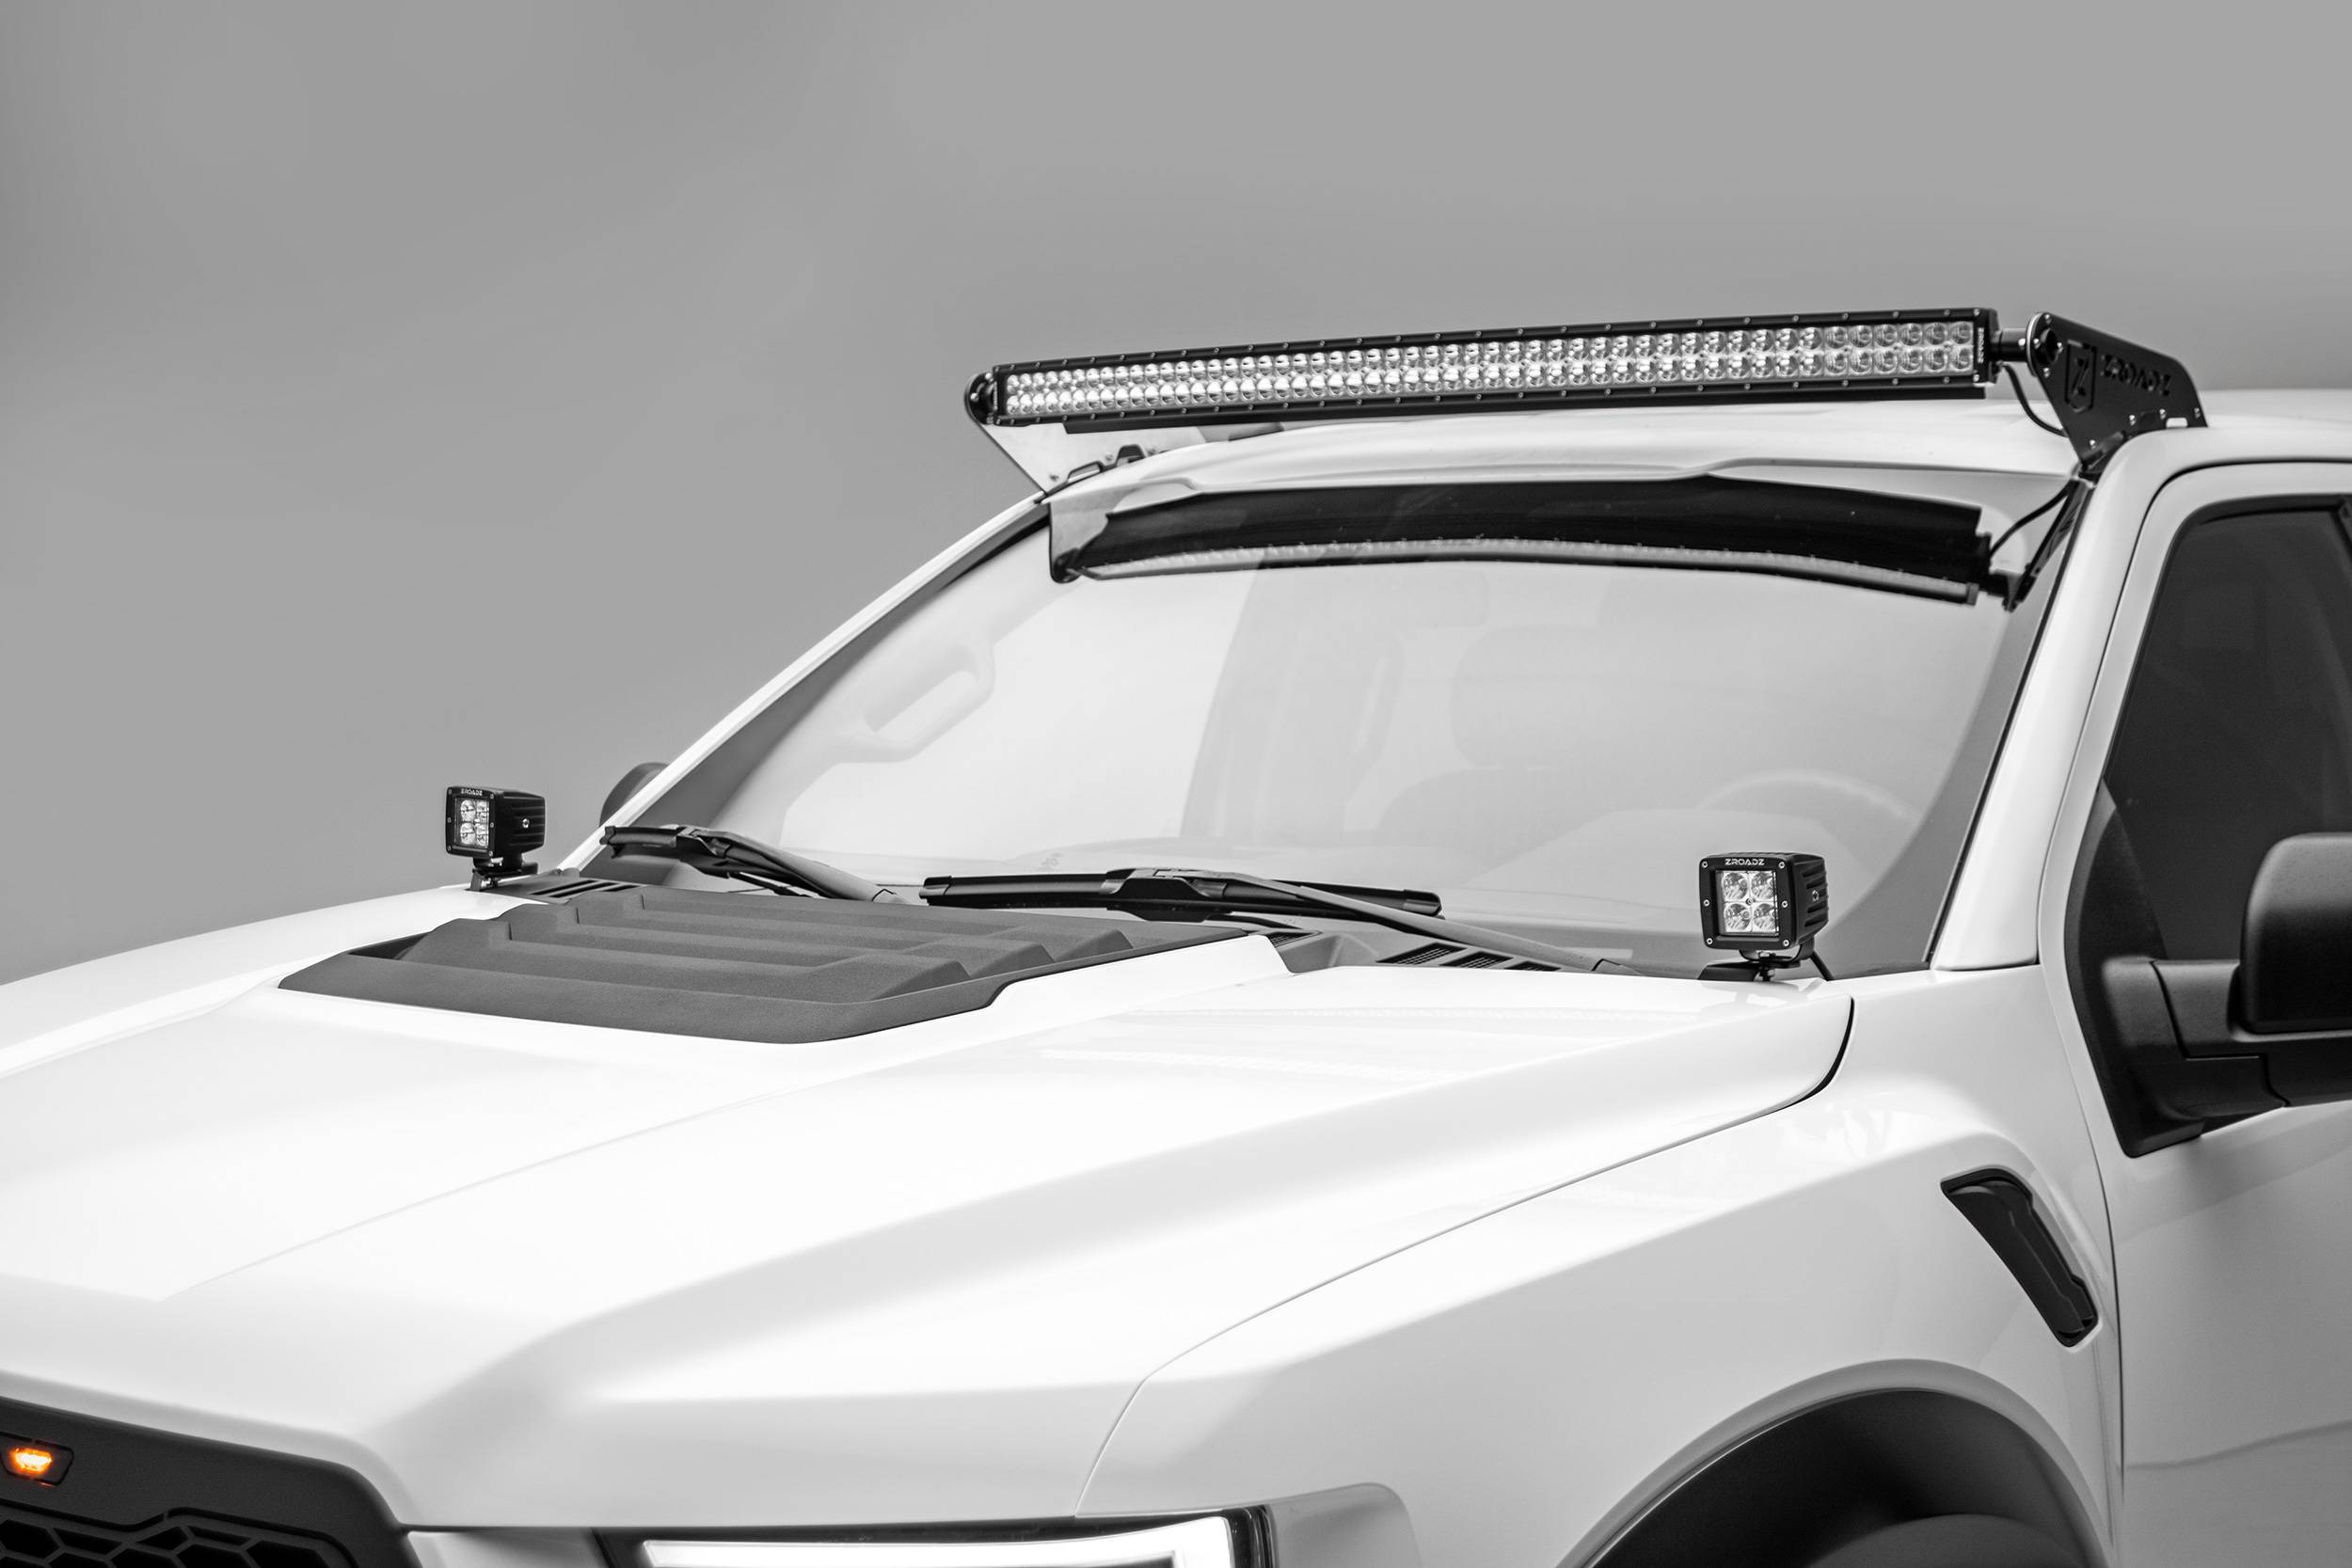 ZROADZ OFF ROAD PRODUCTS - Ford F-150, Raptor Front Roof LED Bracket to mount 52 Inch Curved LED Light Bar - PN #Z335662